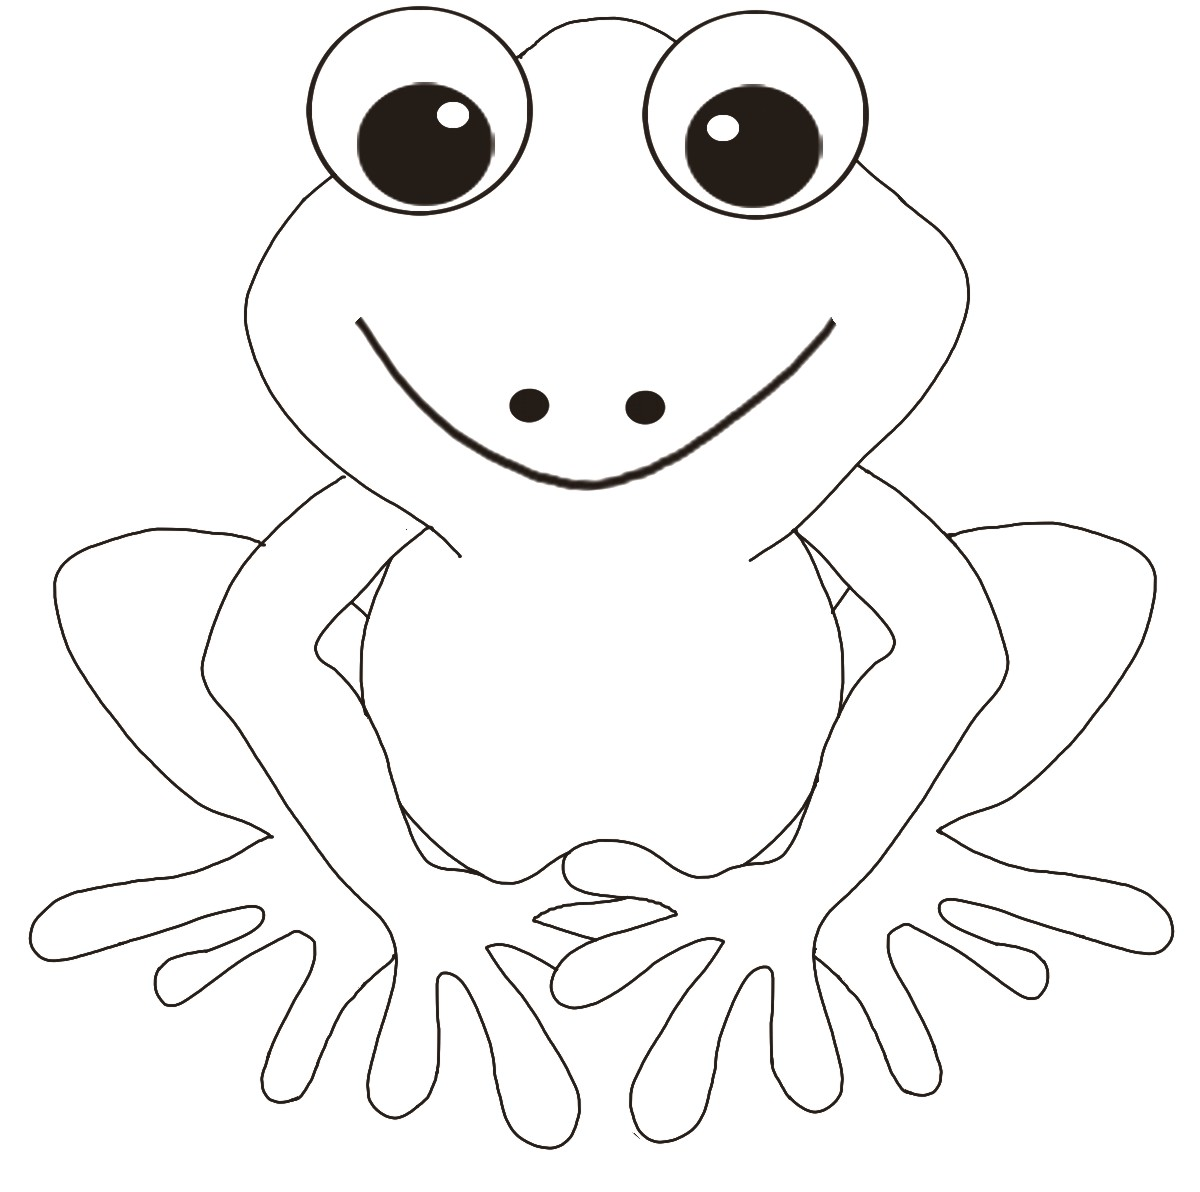 frog coloring pages for toddlers - photo#1